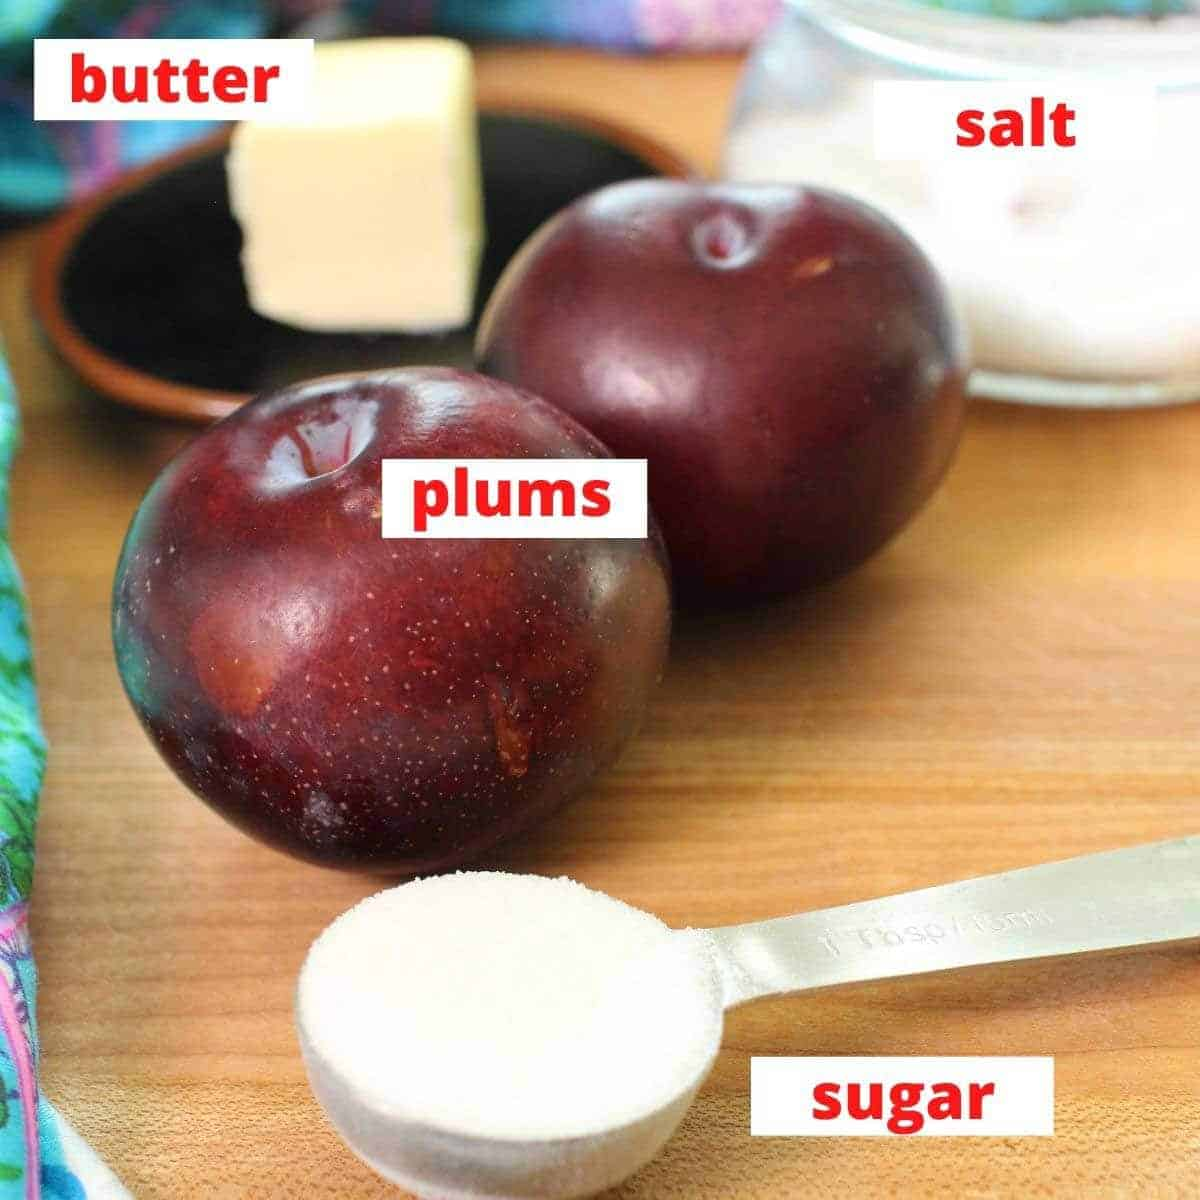 the ingredients for caramelized plums on a brown table including 2 plums, sugar, and butter.